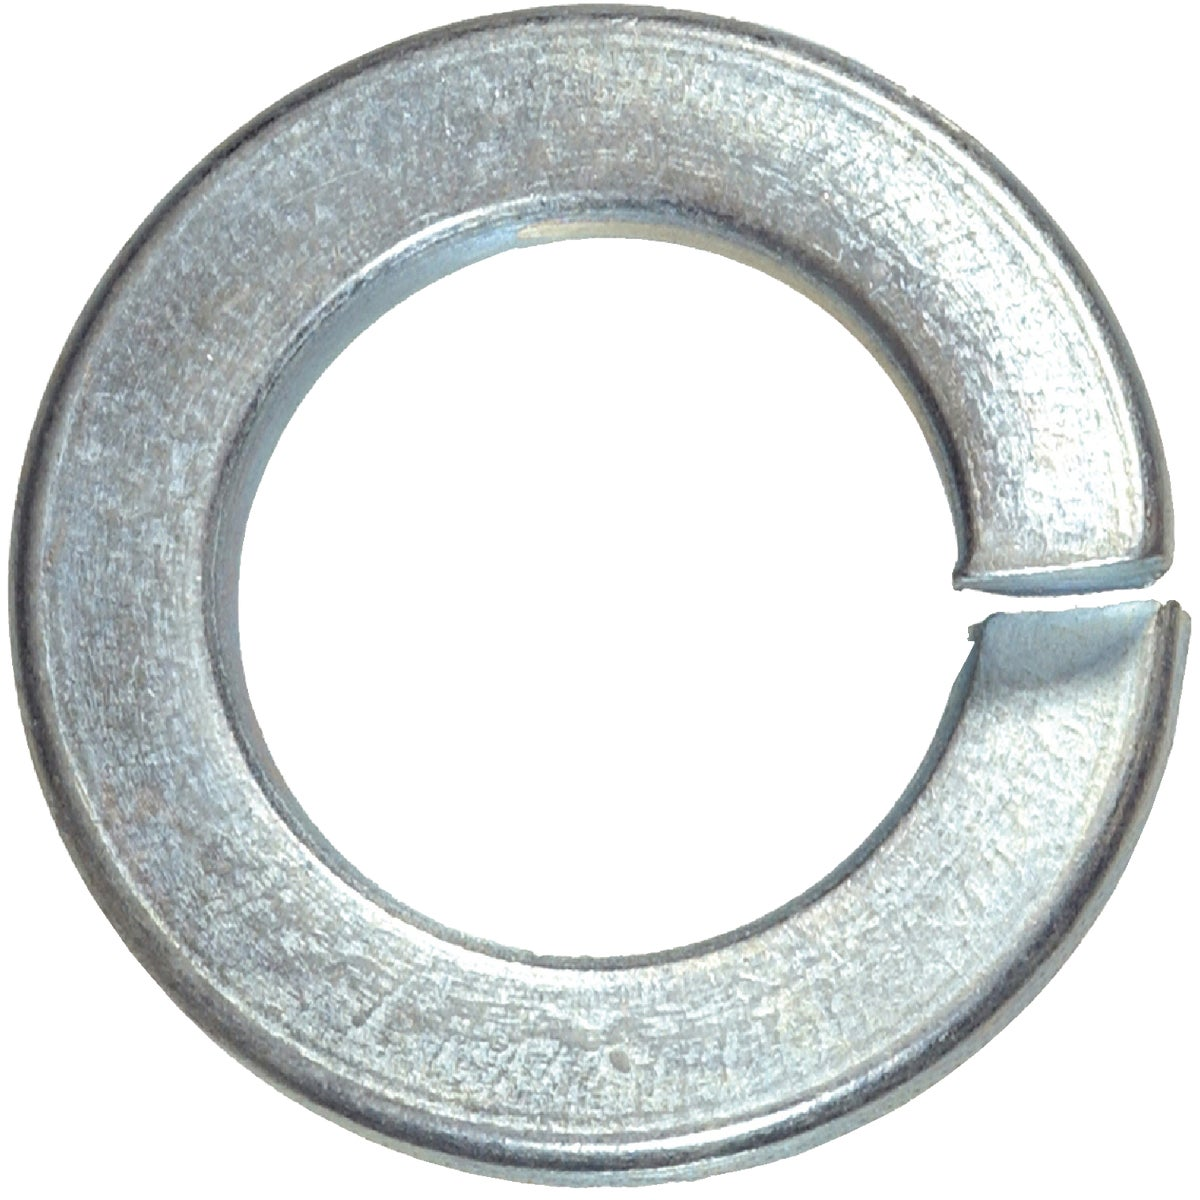 100PC #8 LOCK WASHER - 300012 by Hillman Fastener